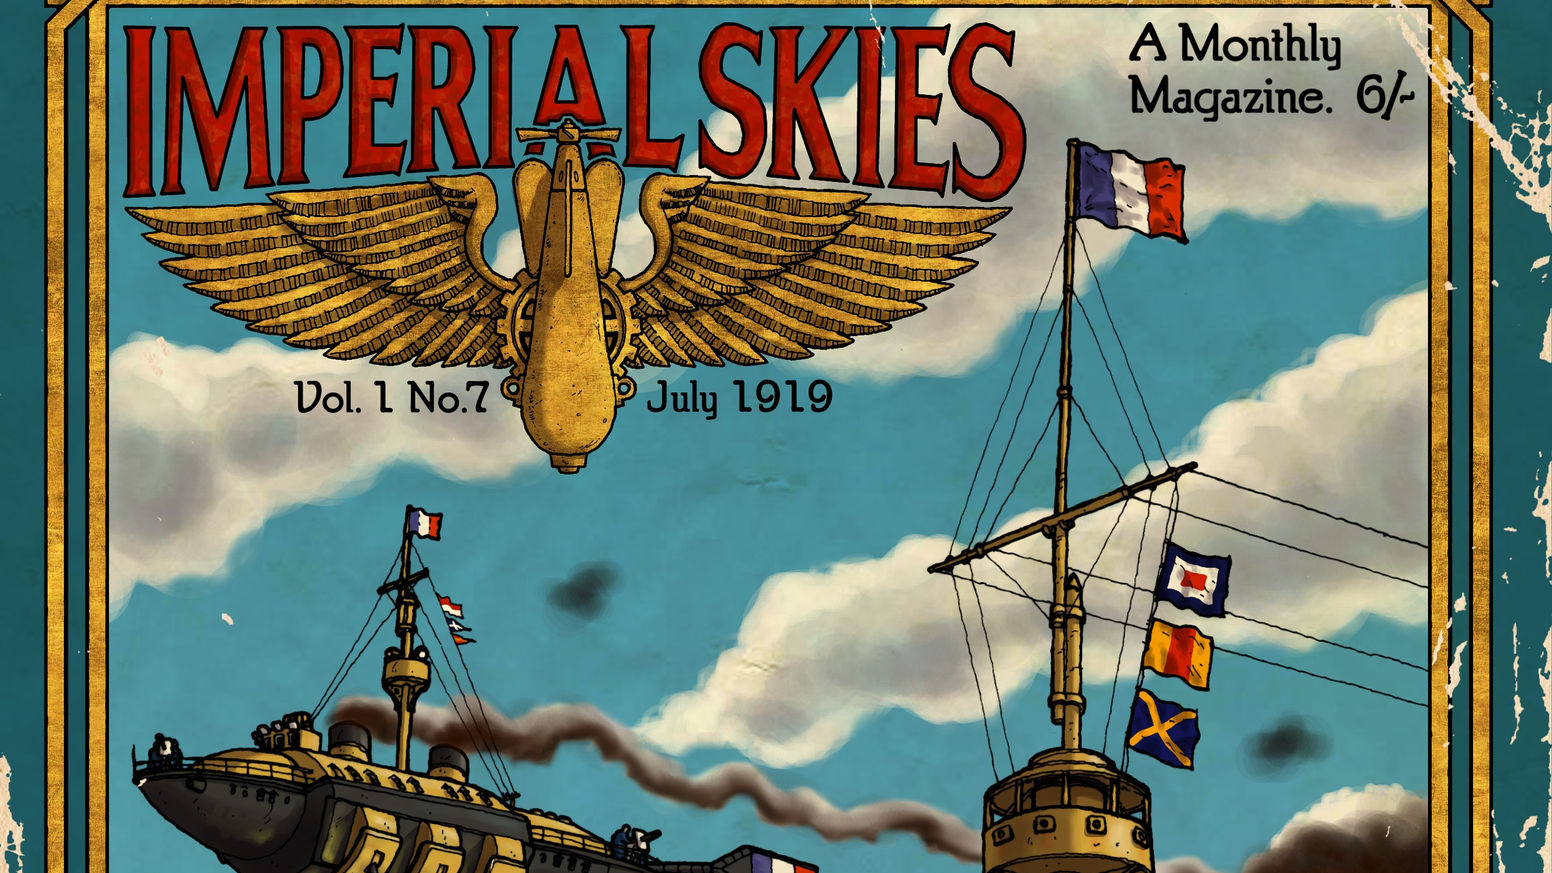 A wargame rule book for playing aerial combat using lighter than air ships in a fictional alternative World War I setting.